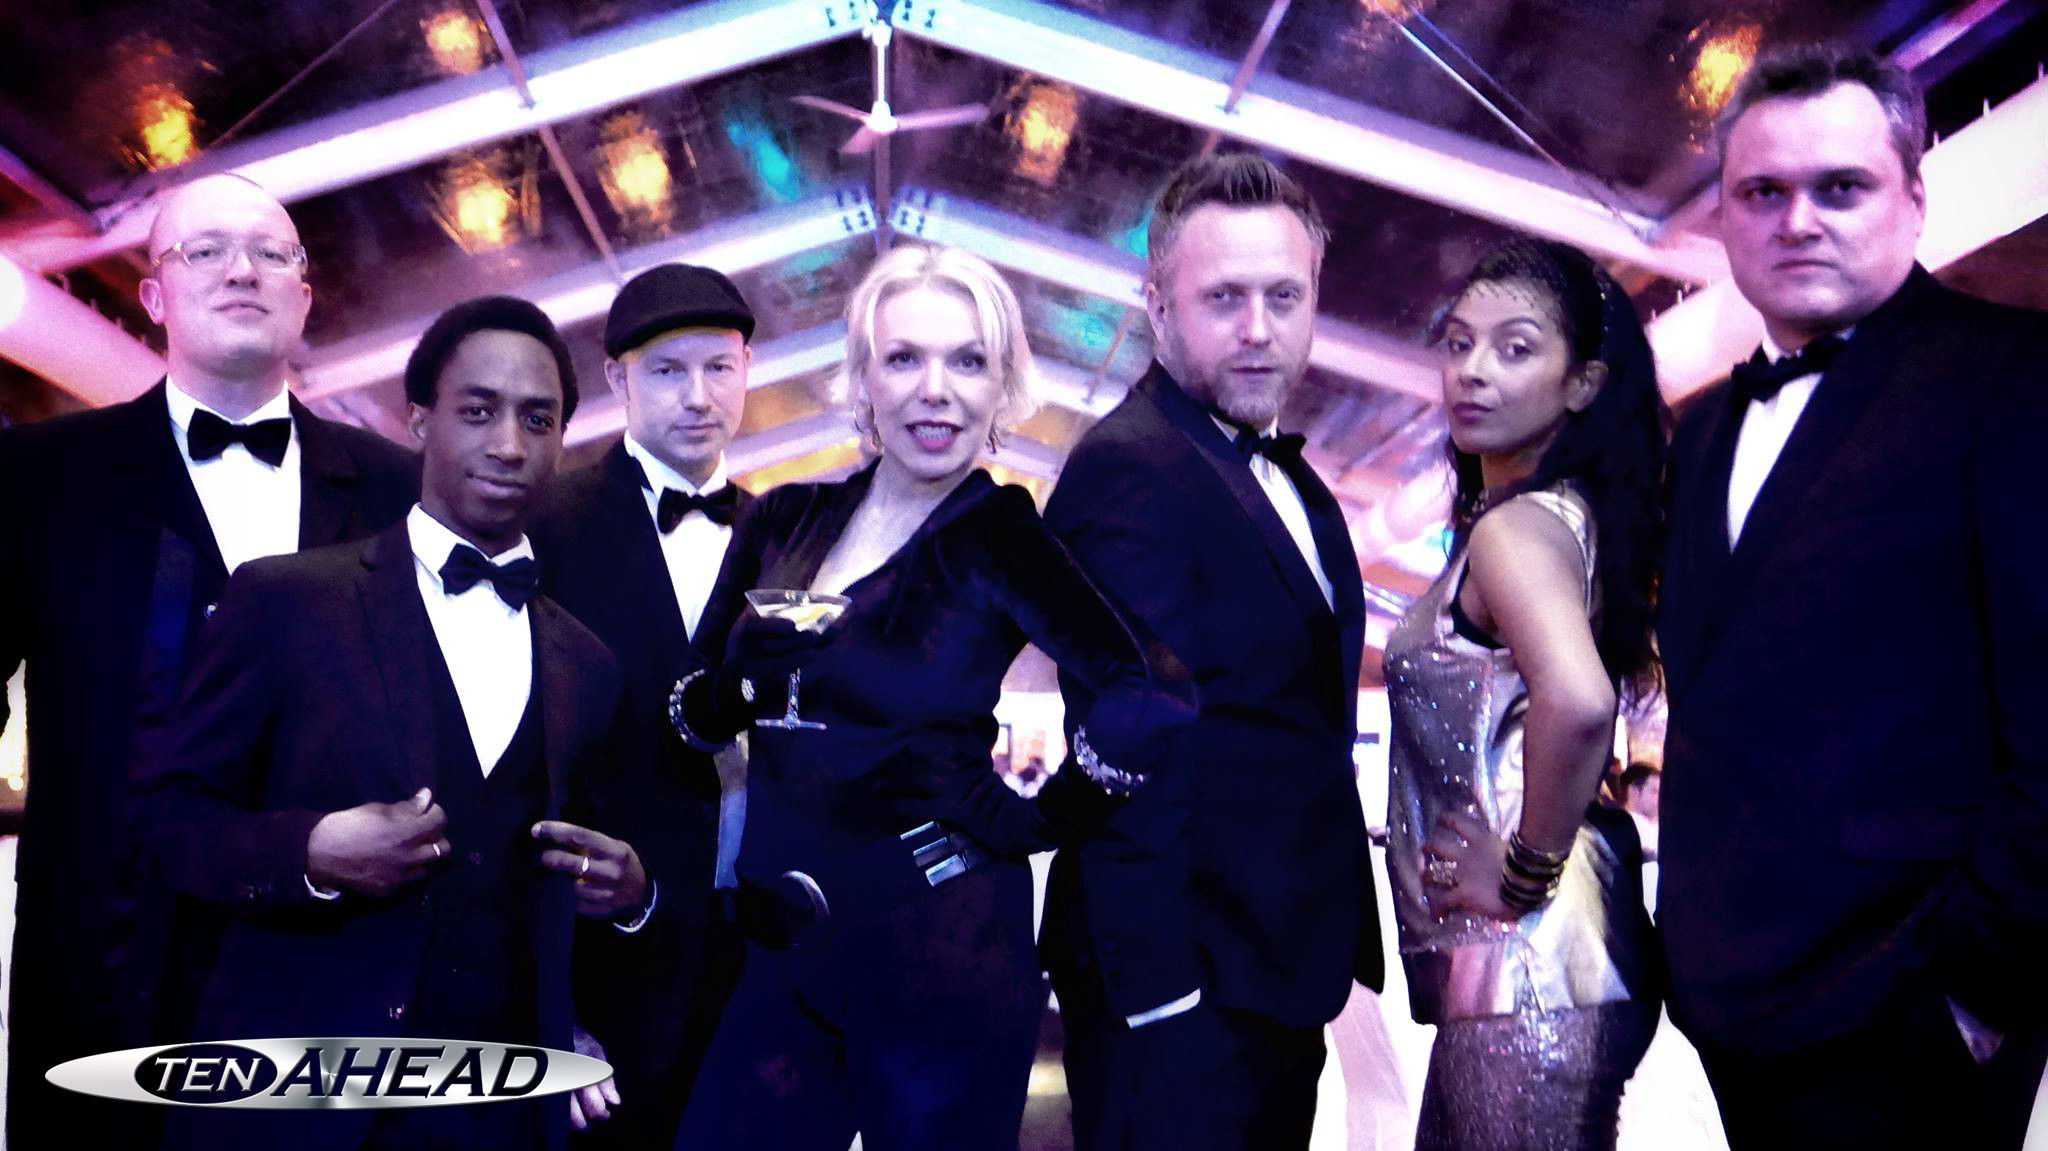 liveband köln, james bond show, ten ahead, partyband, shirley bassey, entertainment, stars in concert